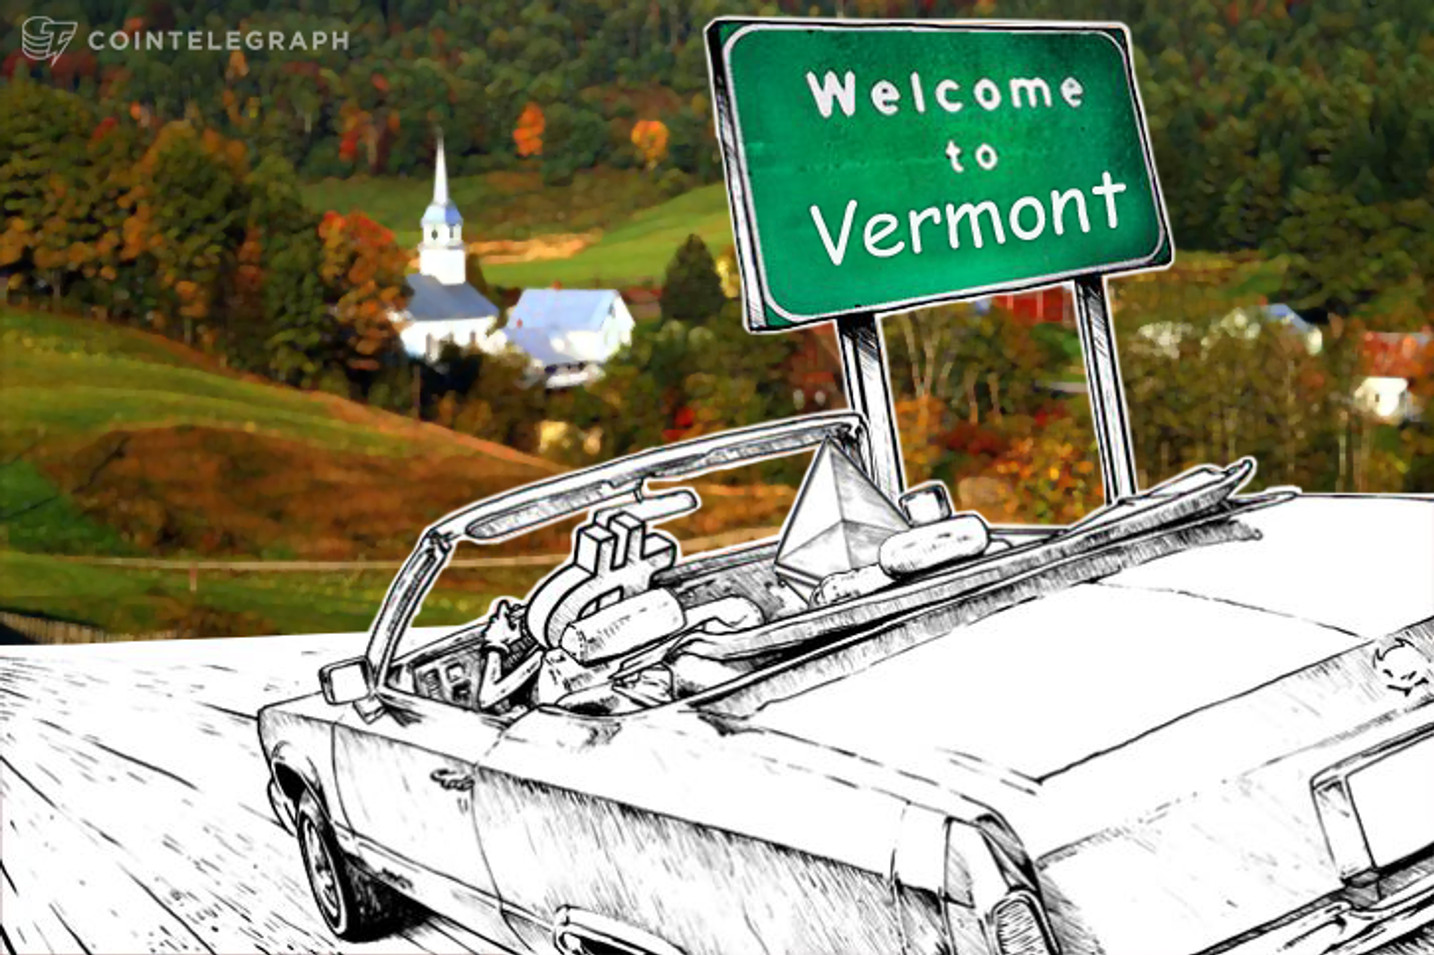 Vermont Considering Blockchain Tech for State Records, Smart Contracts